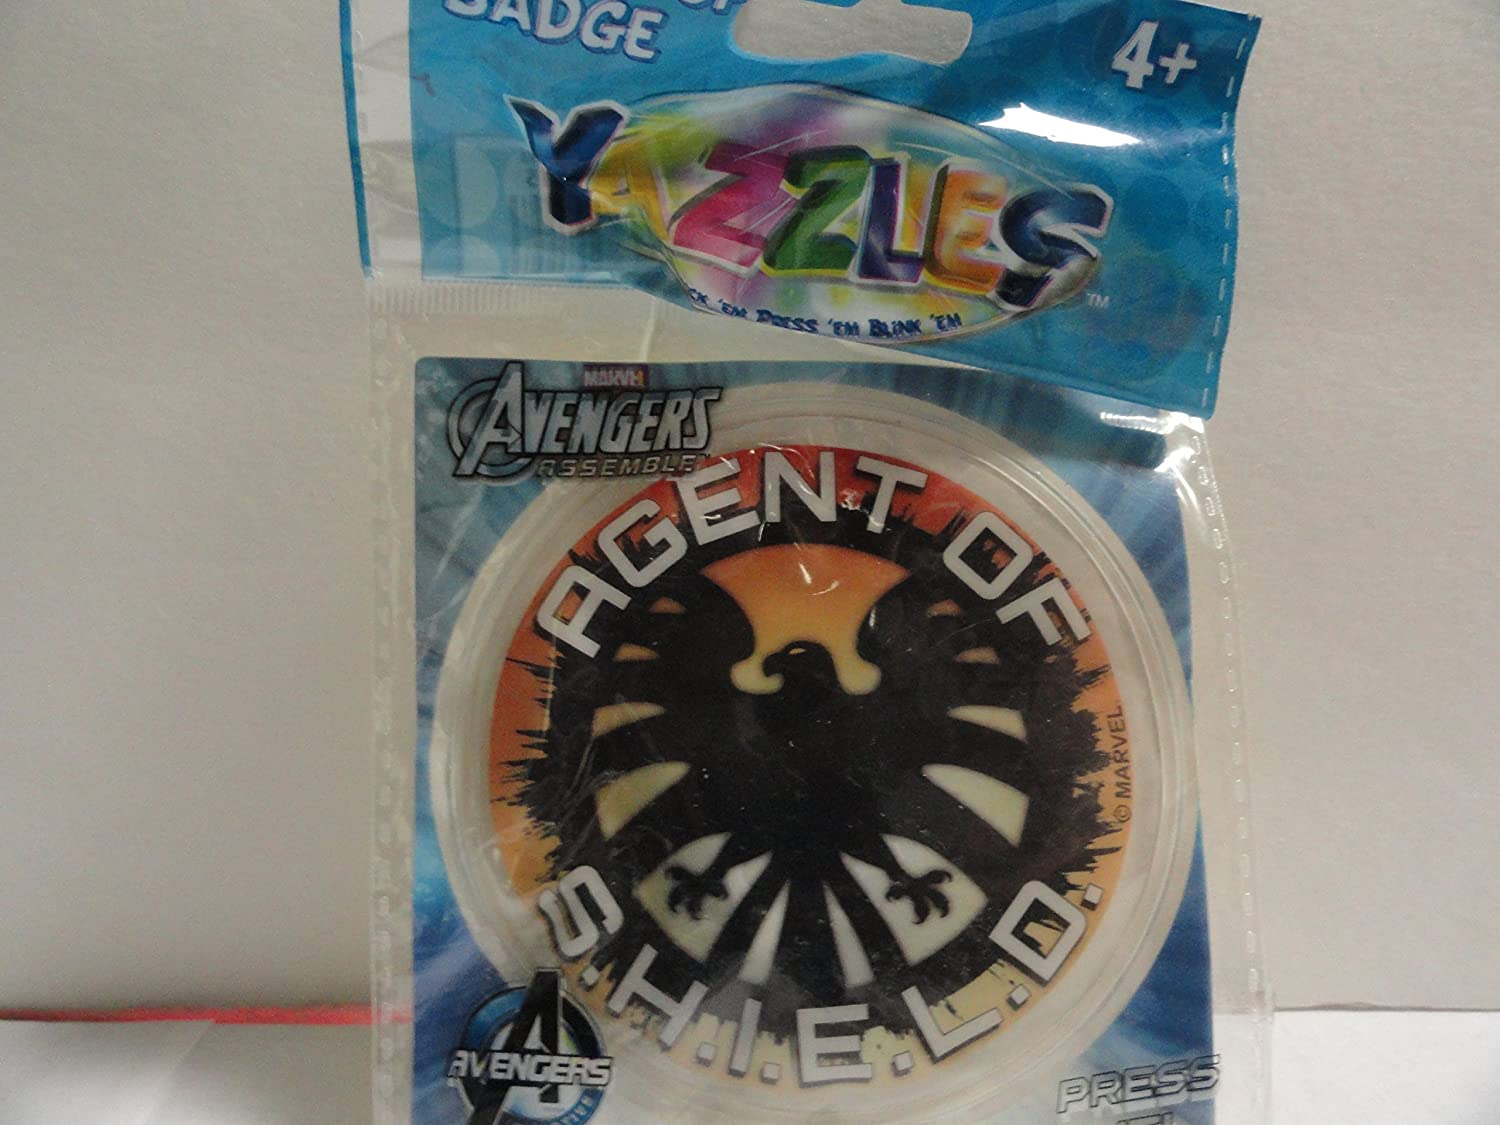 Yazzles Light up Badge Press It Avengers Agent of S.H.I.E.L.D.